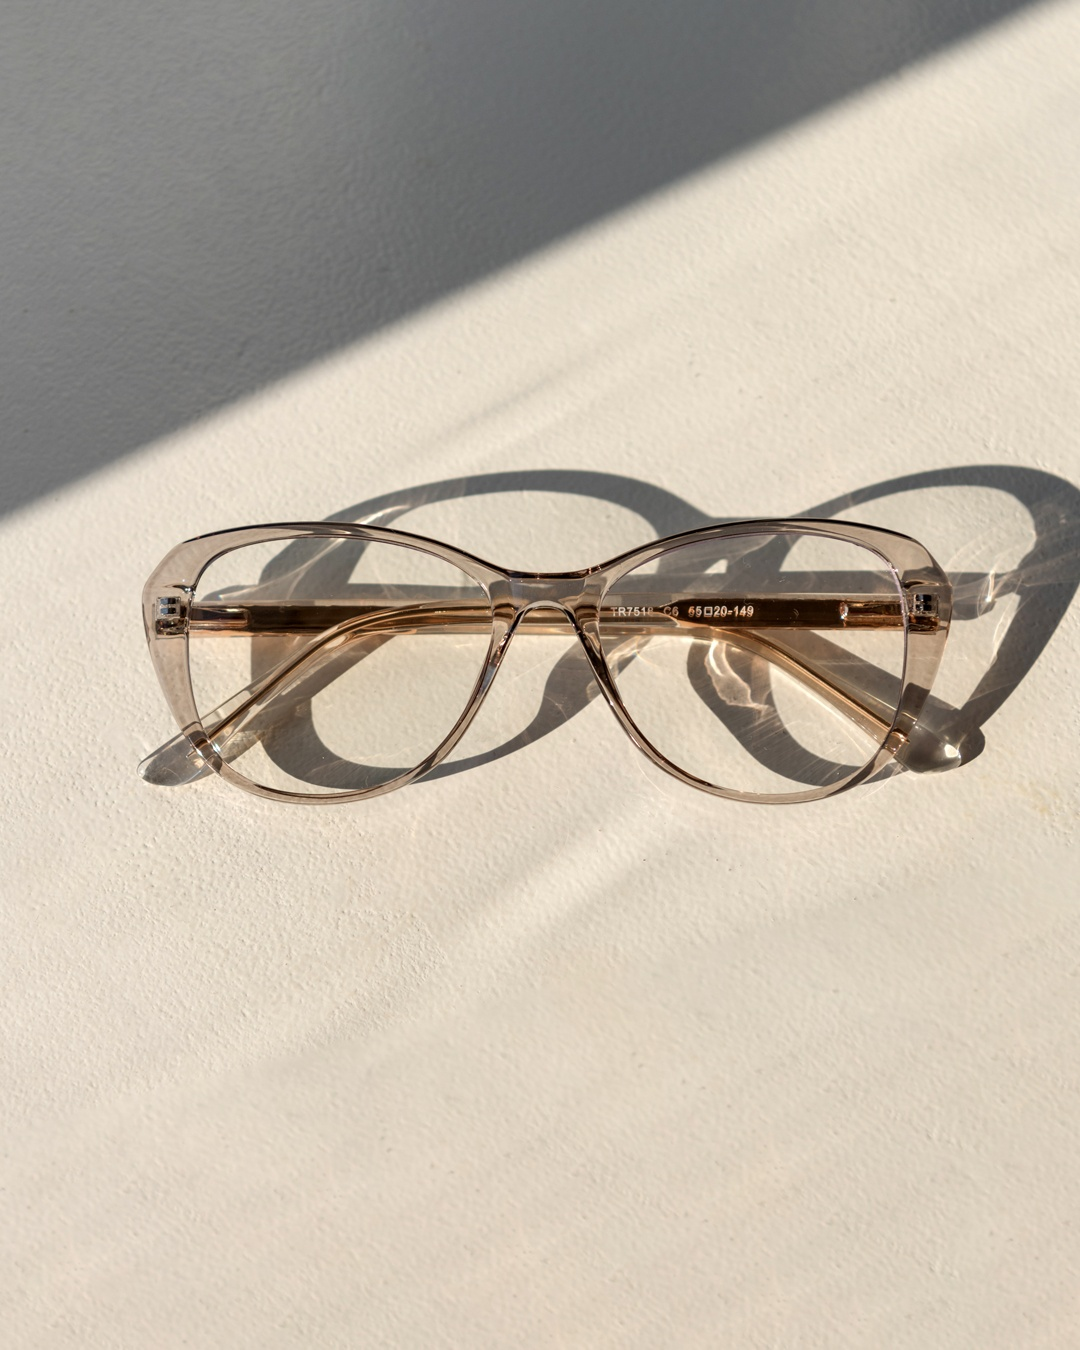 Butterfly framed glasses with a grey, transparent frame rest on a white surface.